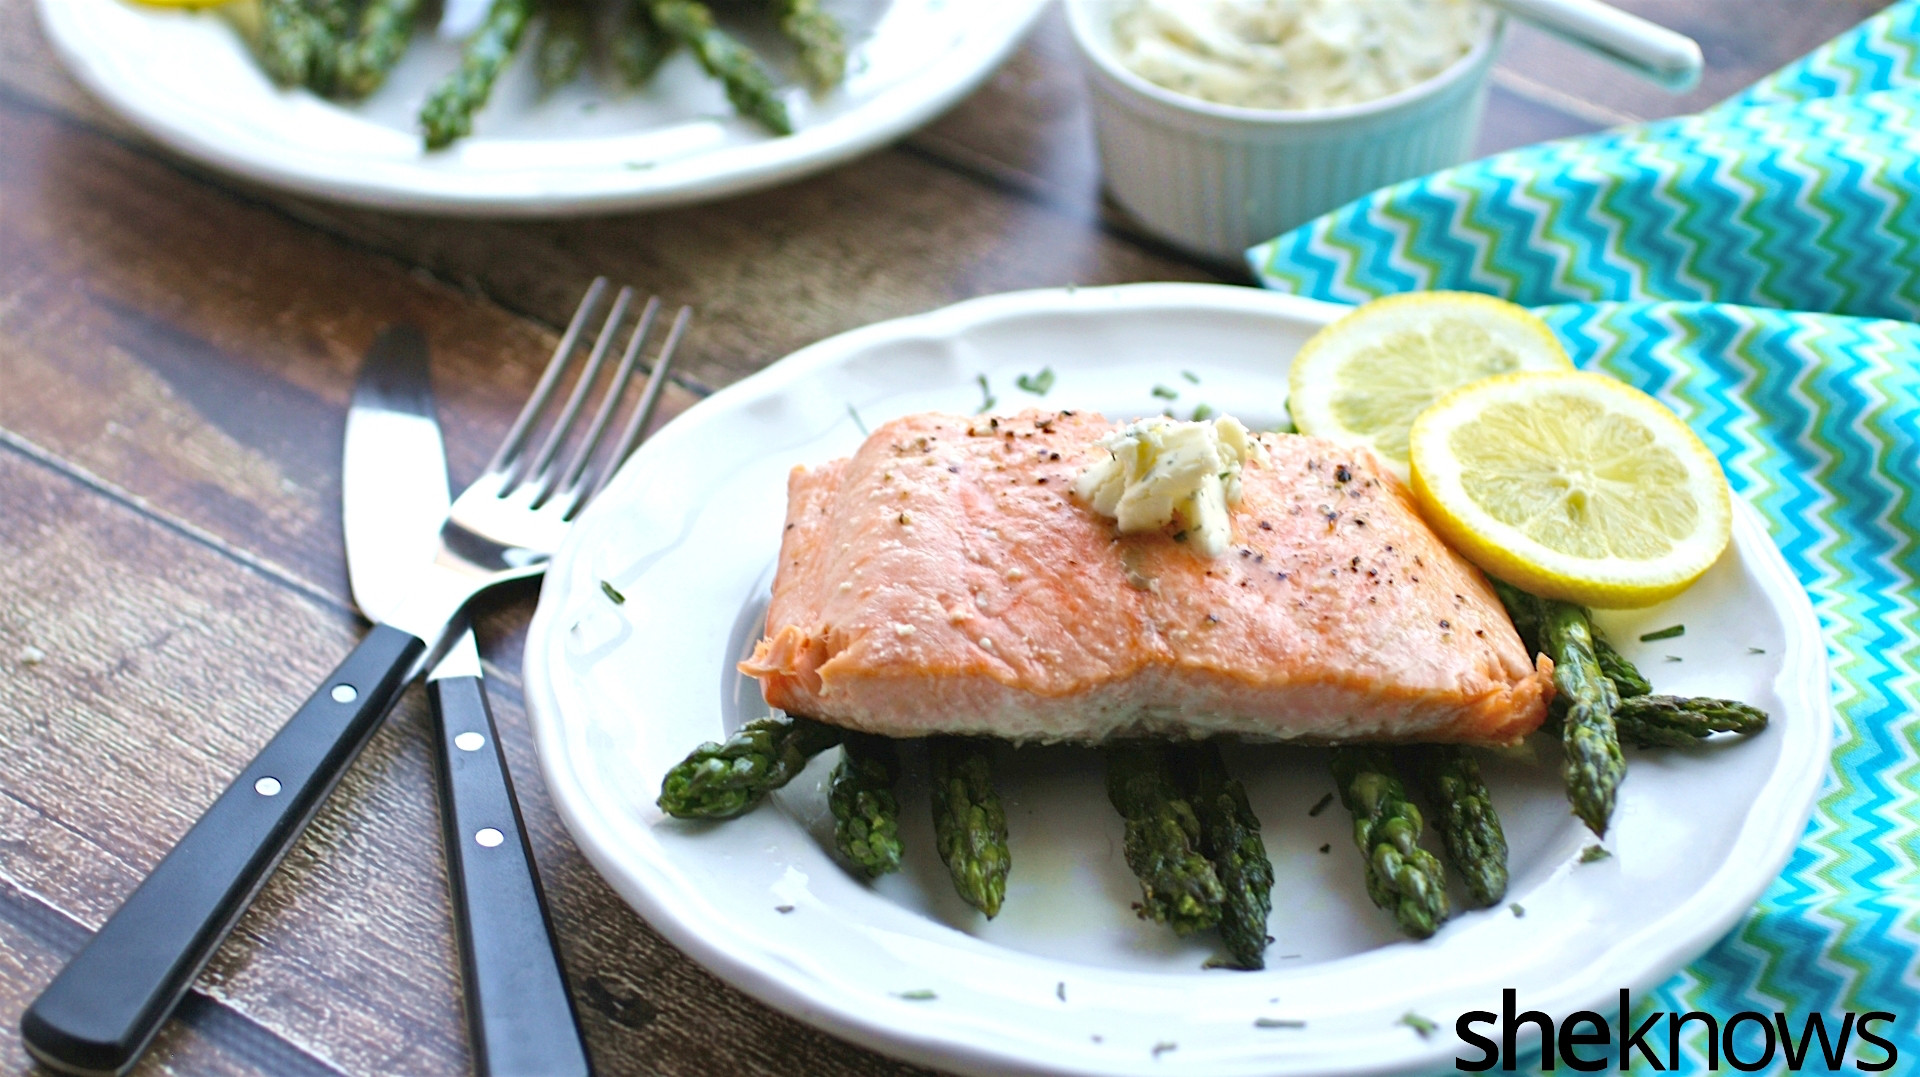 Salmon For Easter Dinner  16 Easter Main Dishes for People Who Hate Ham See ya